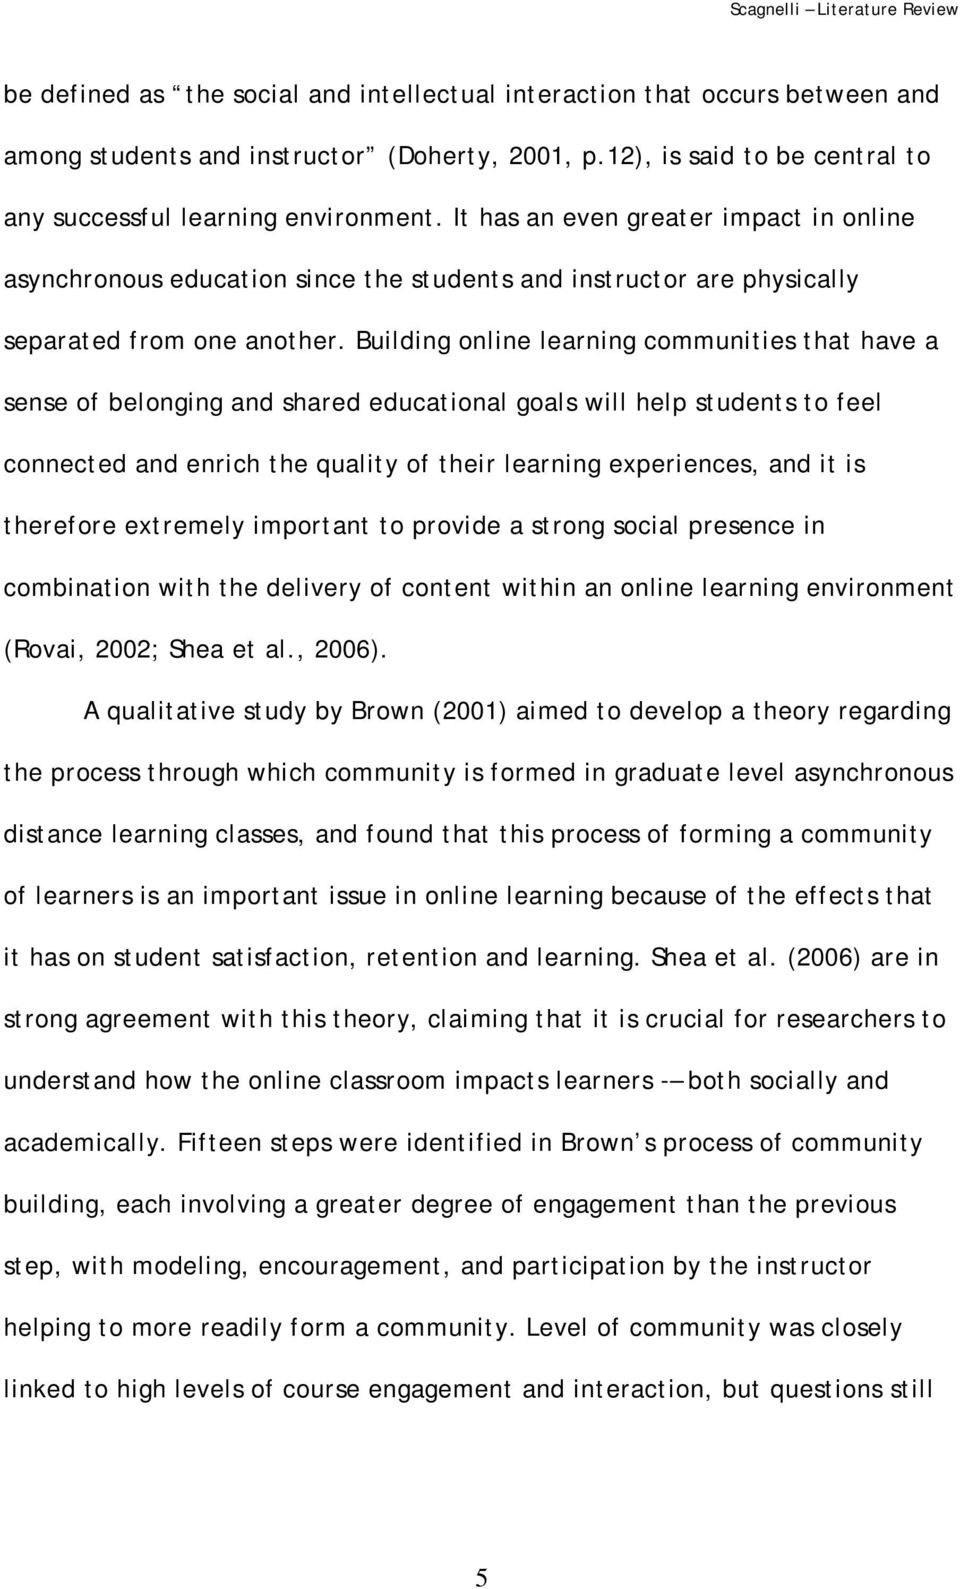 Building online learning communities that have a sense of belonging and shared educational goals will help students to feel connected and enrich the quality of their learning experiences, and it is